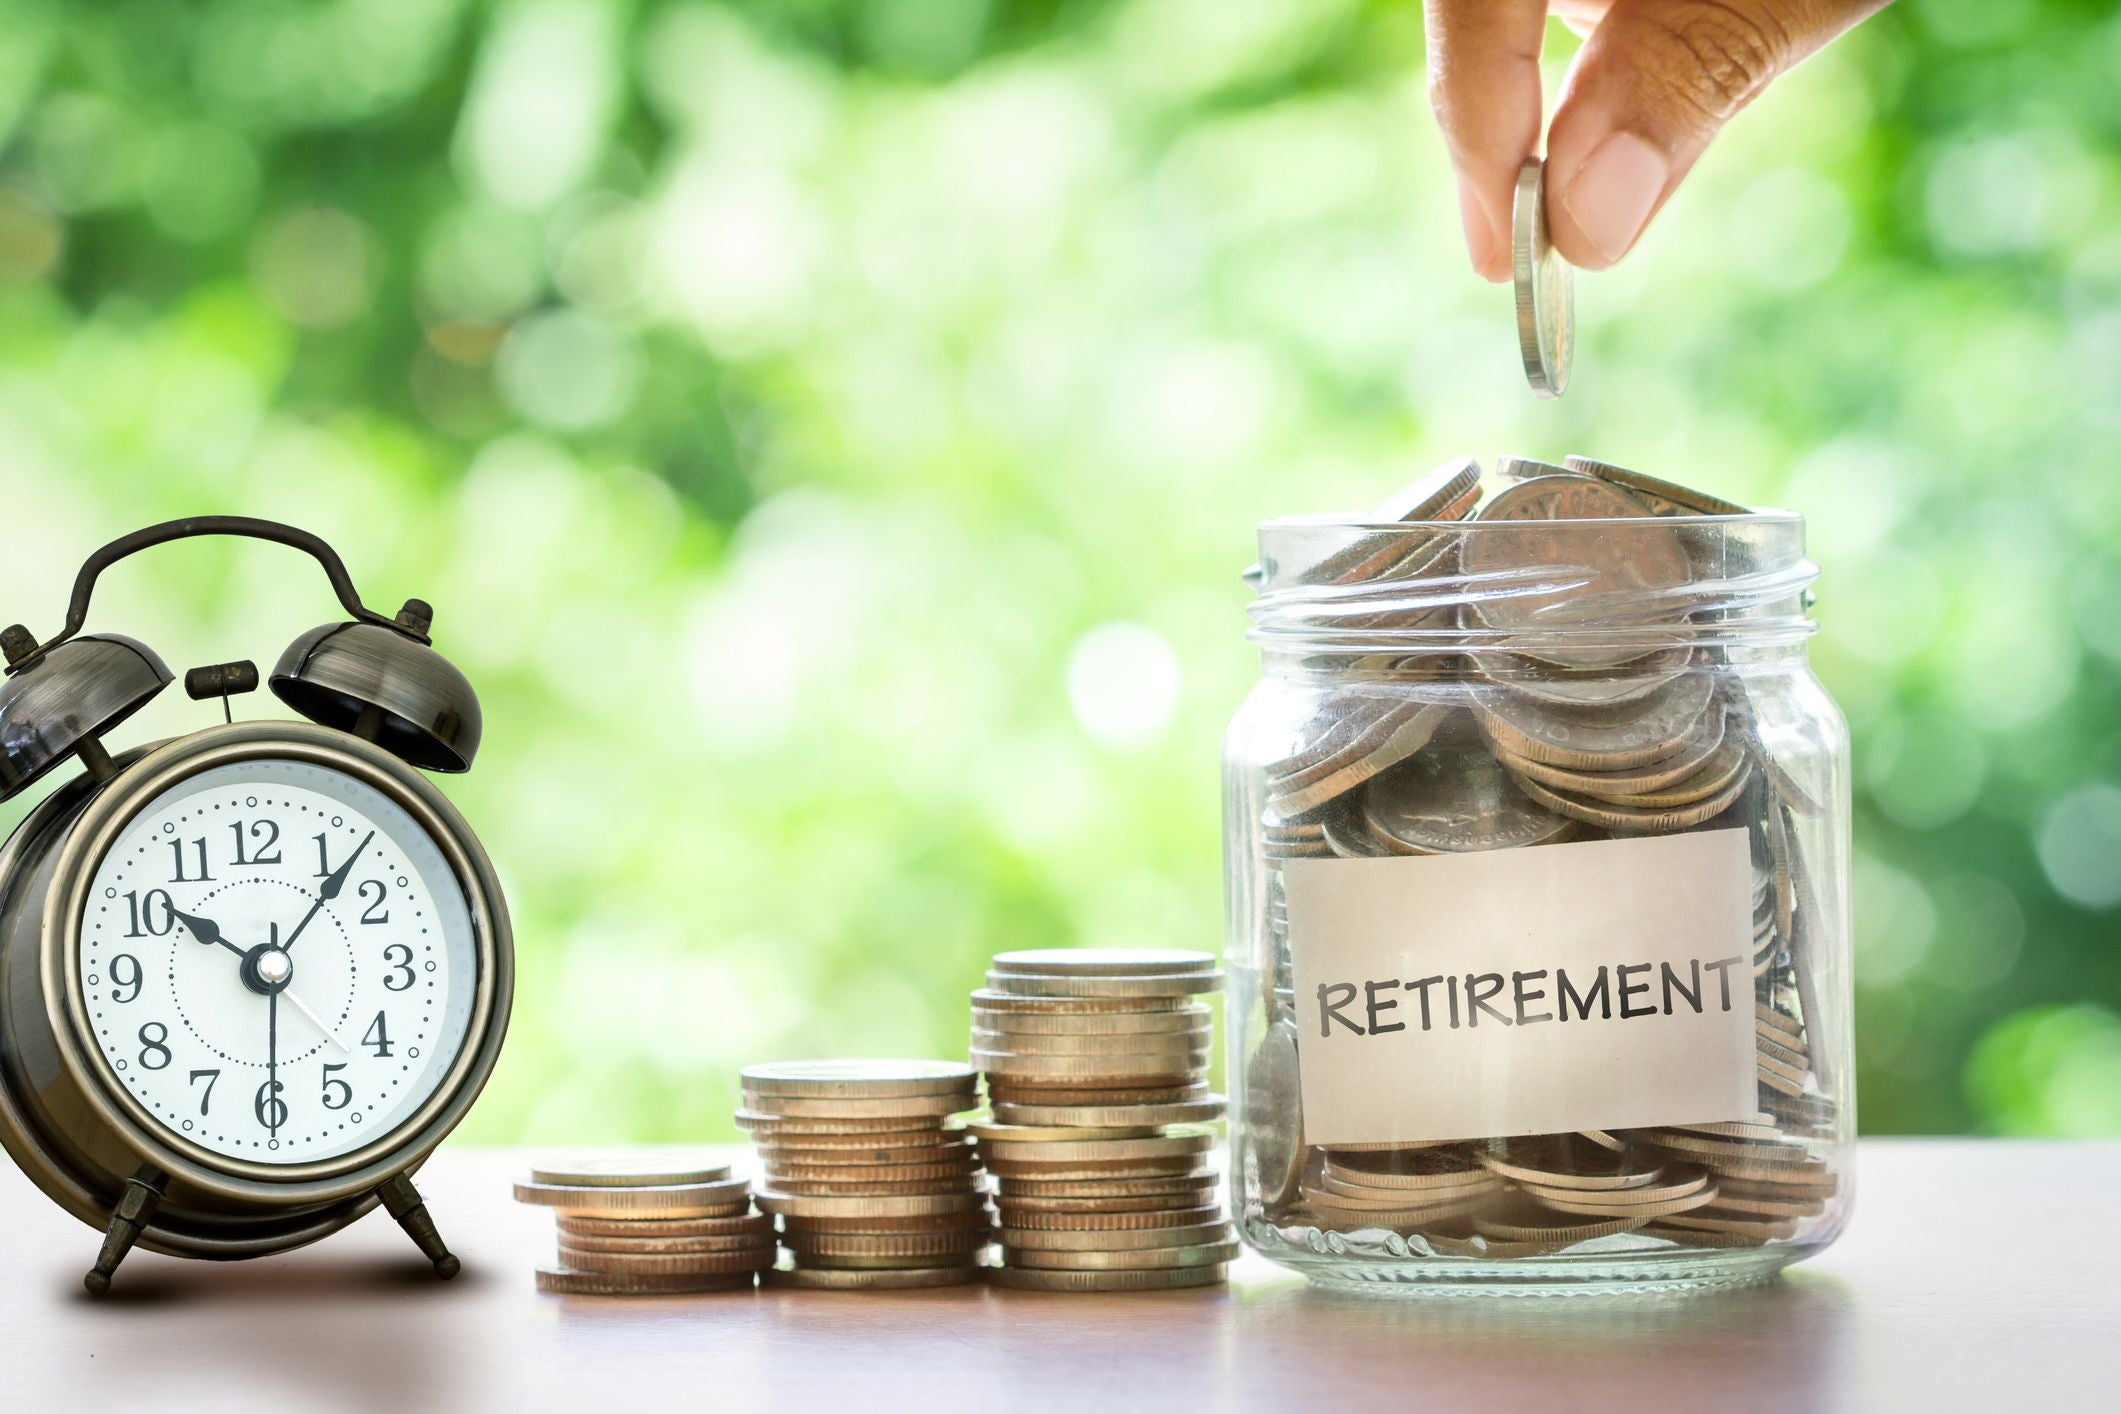 More Than 60% of Workers Are Missing These Key Factors in Their Retirement Plan | The Motley Fool